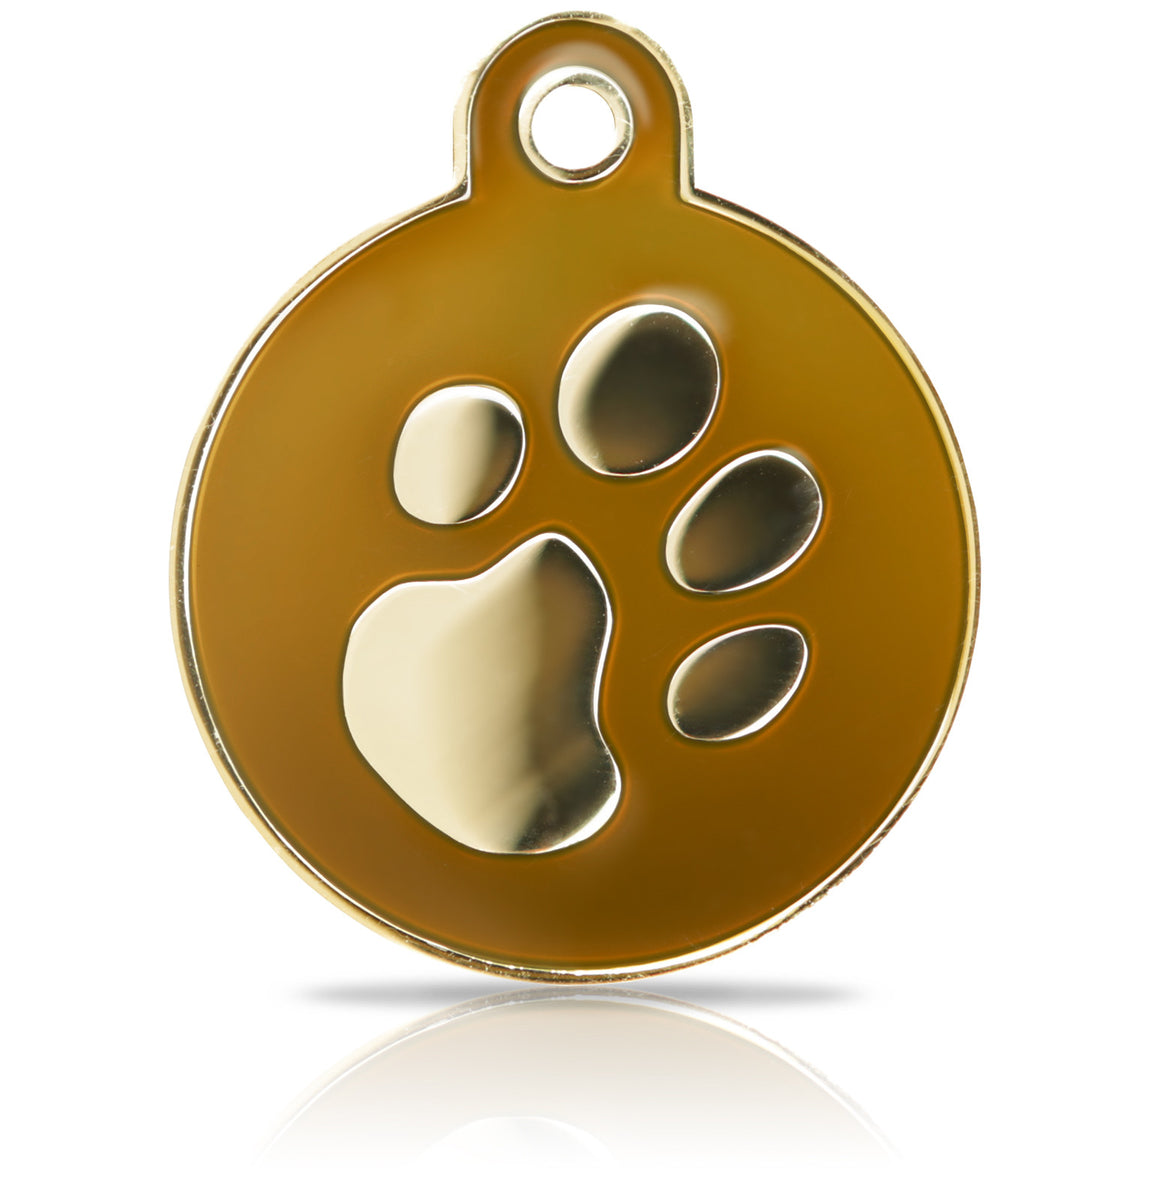 TaggIT Elegance Large Disc Brown & Gold Pet Tag iMarc Tag